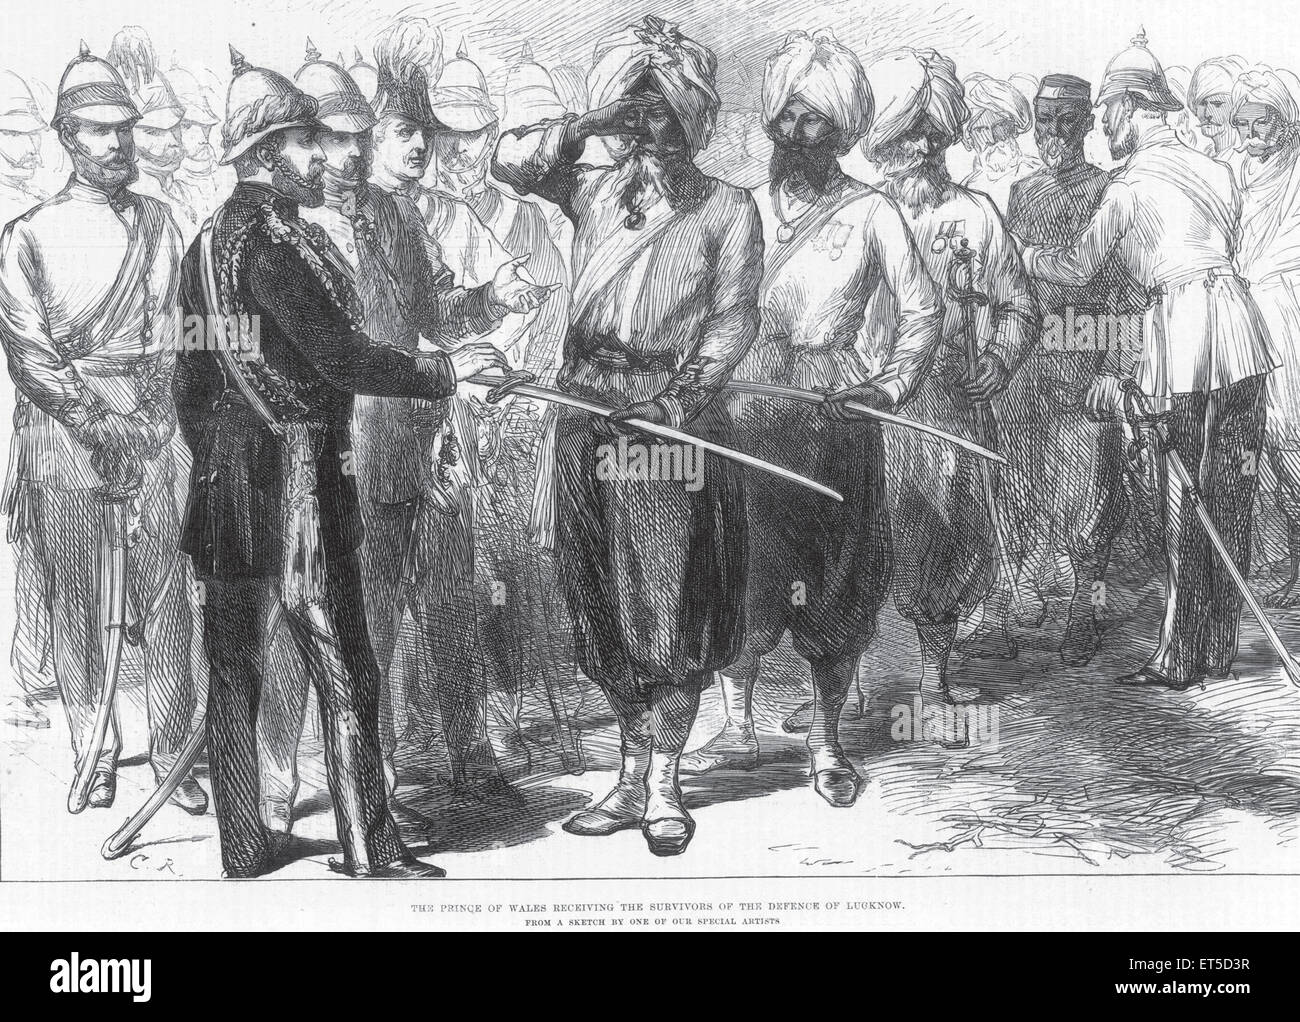 Royalty on Tour The Prince of Wales receiving the survivors of the defense of Lucknow ; Uttar Pradesh ; India - Stock Image